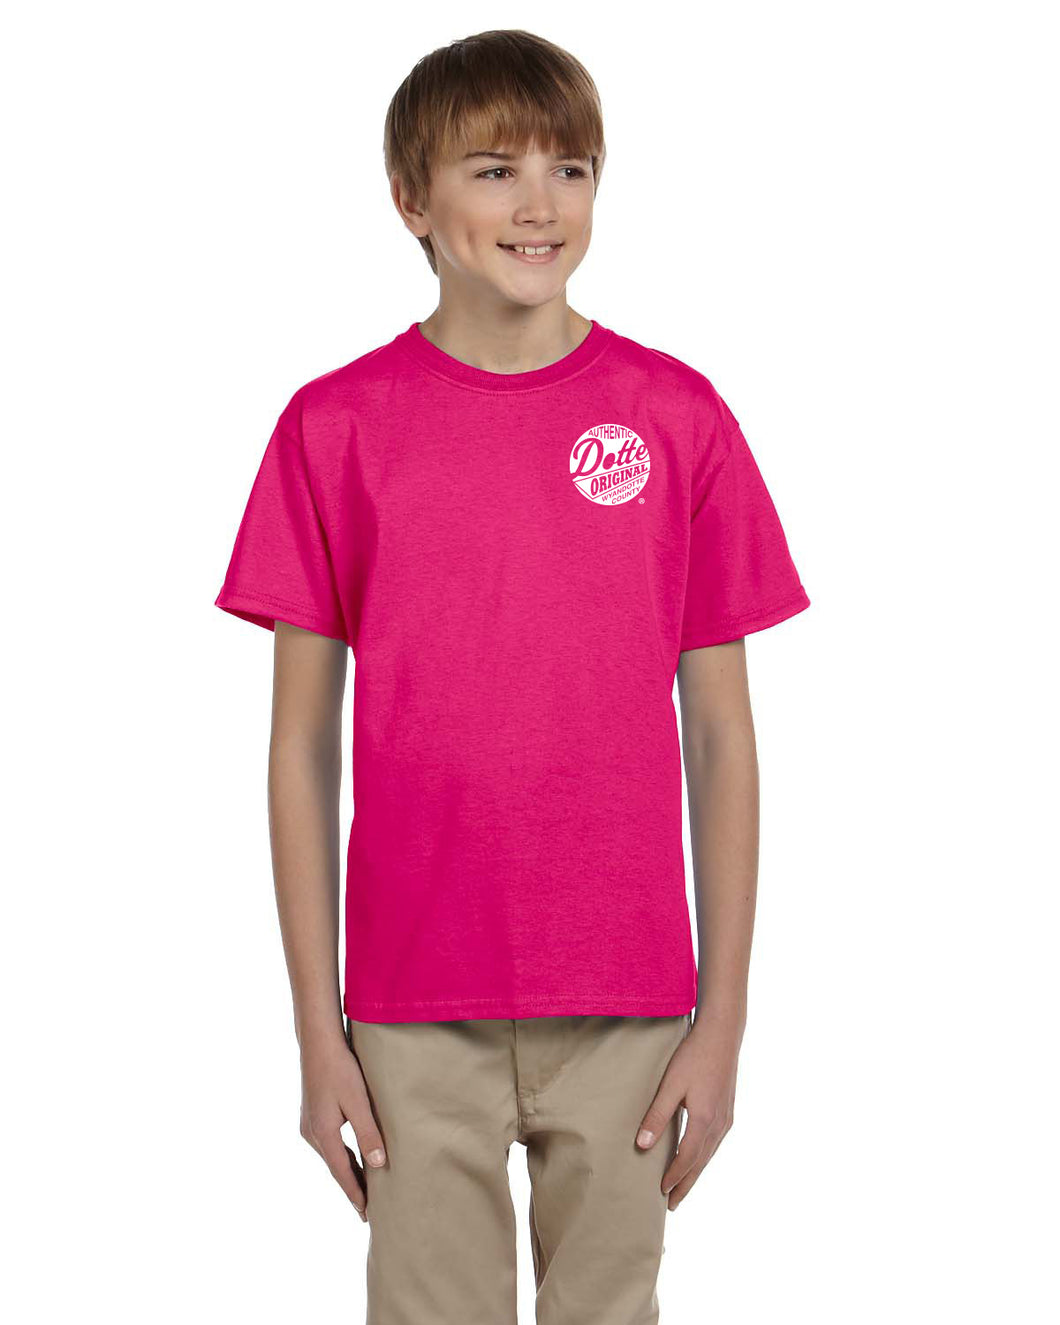 Youth Pink Dotte Shirt